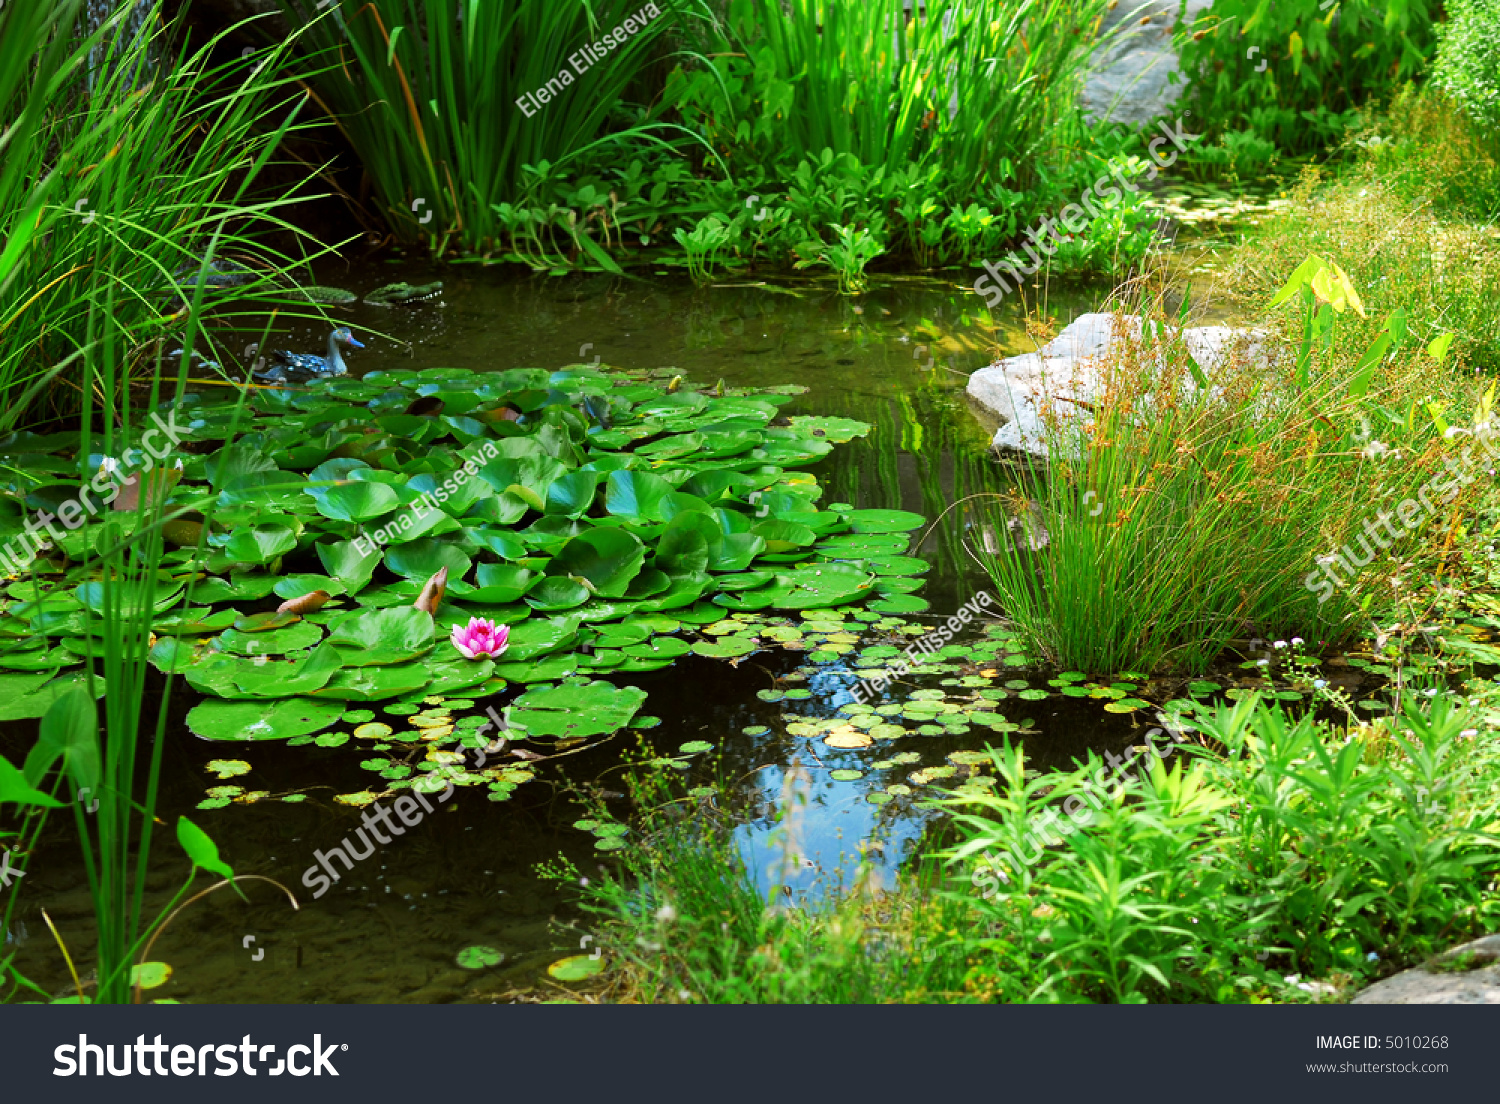 Pond landscaping with aquatic plants and water lilies for Pond with plants